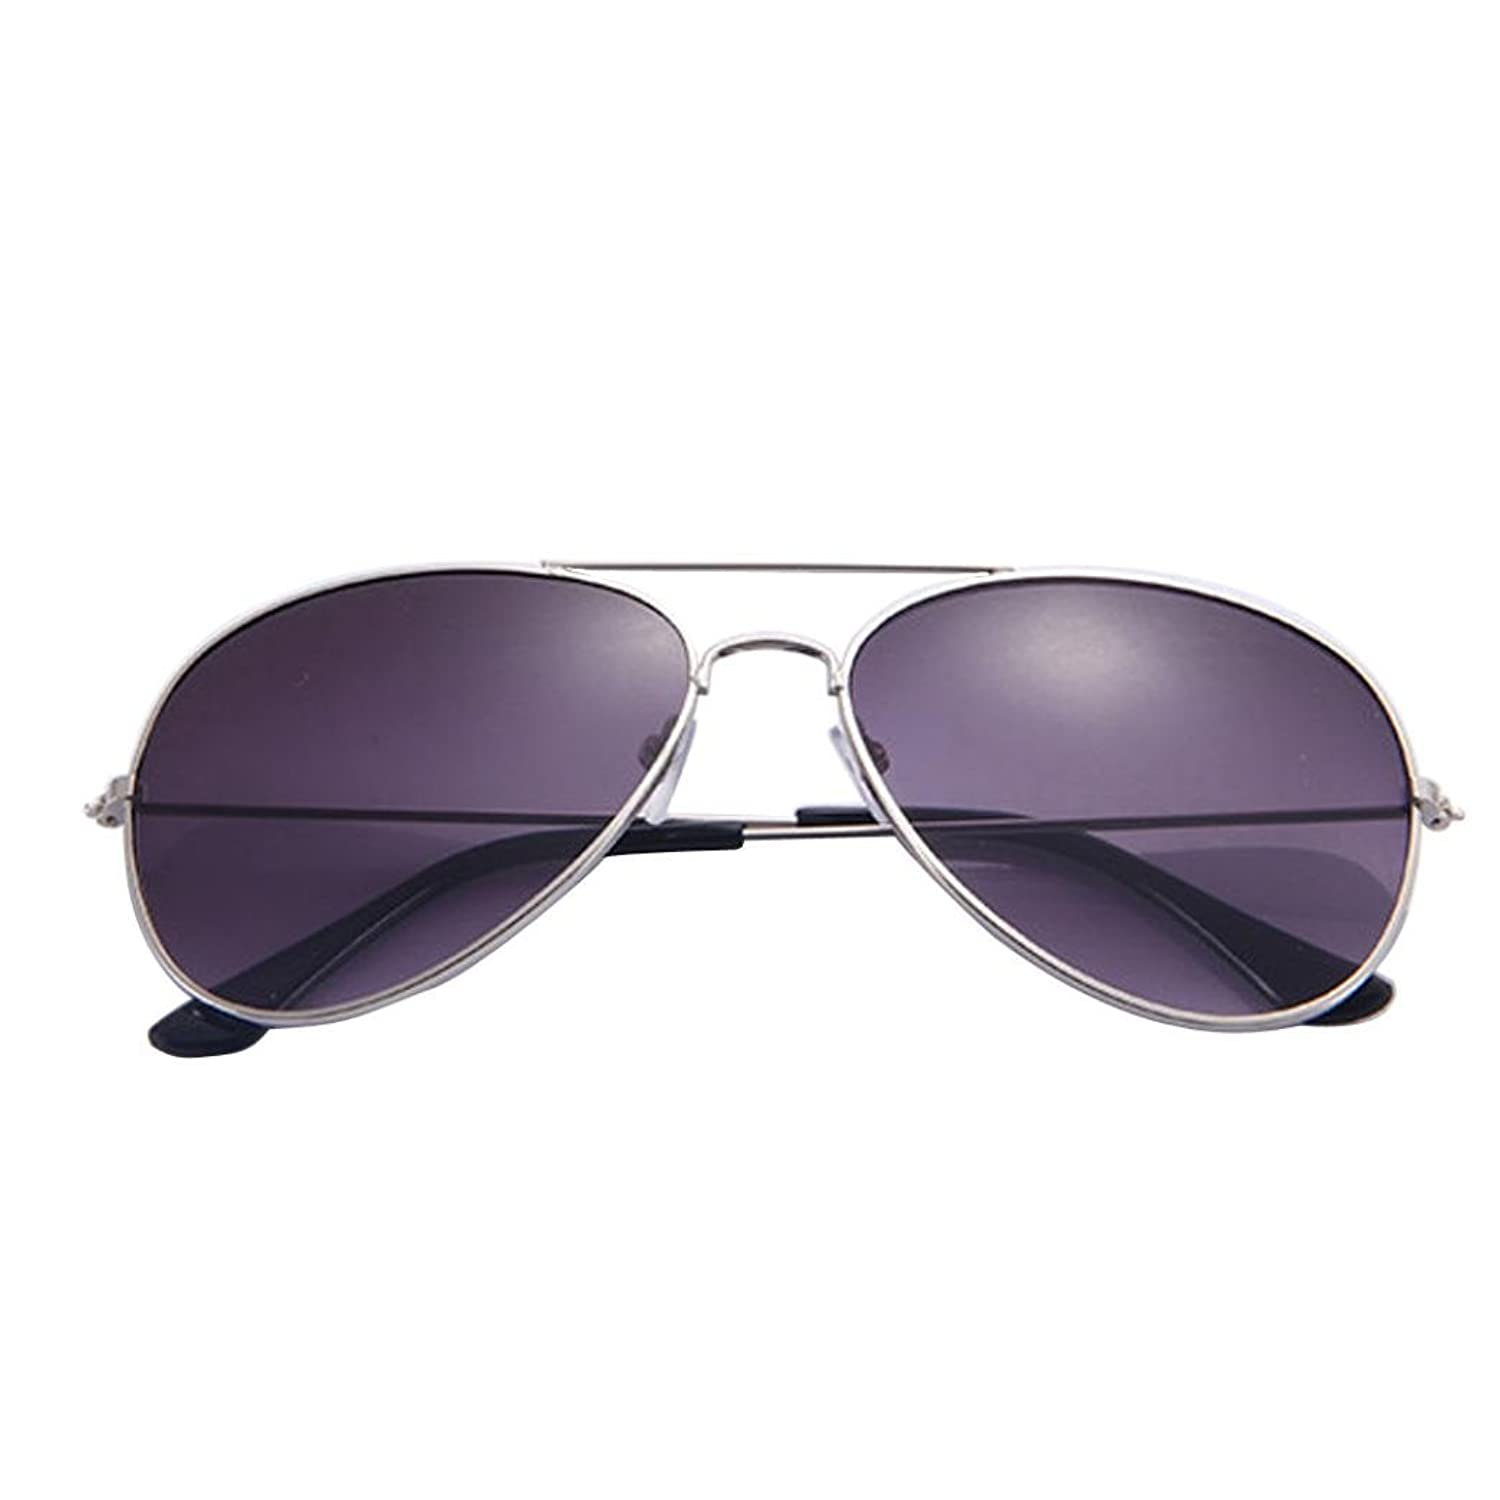 0008807abb8a Amazon.com  Sumen Hot Sale Vintage Round Sunglasses Mirrored Gold Metal  Frame (A)  Clothing